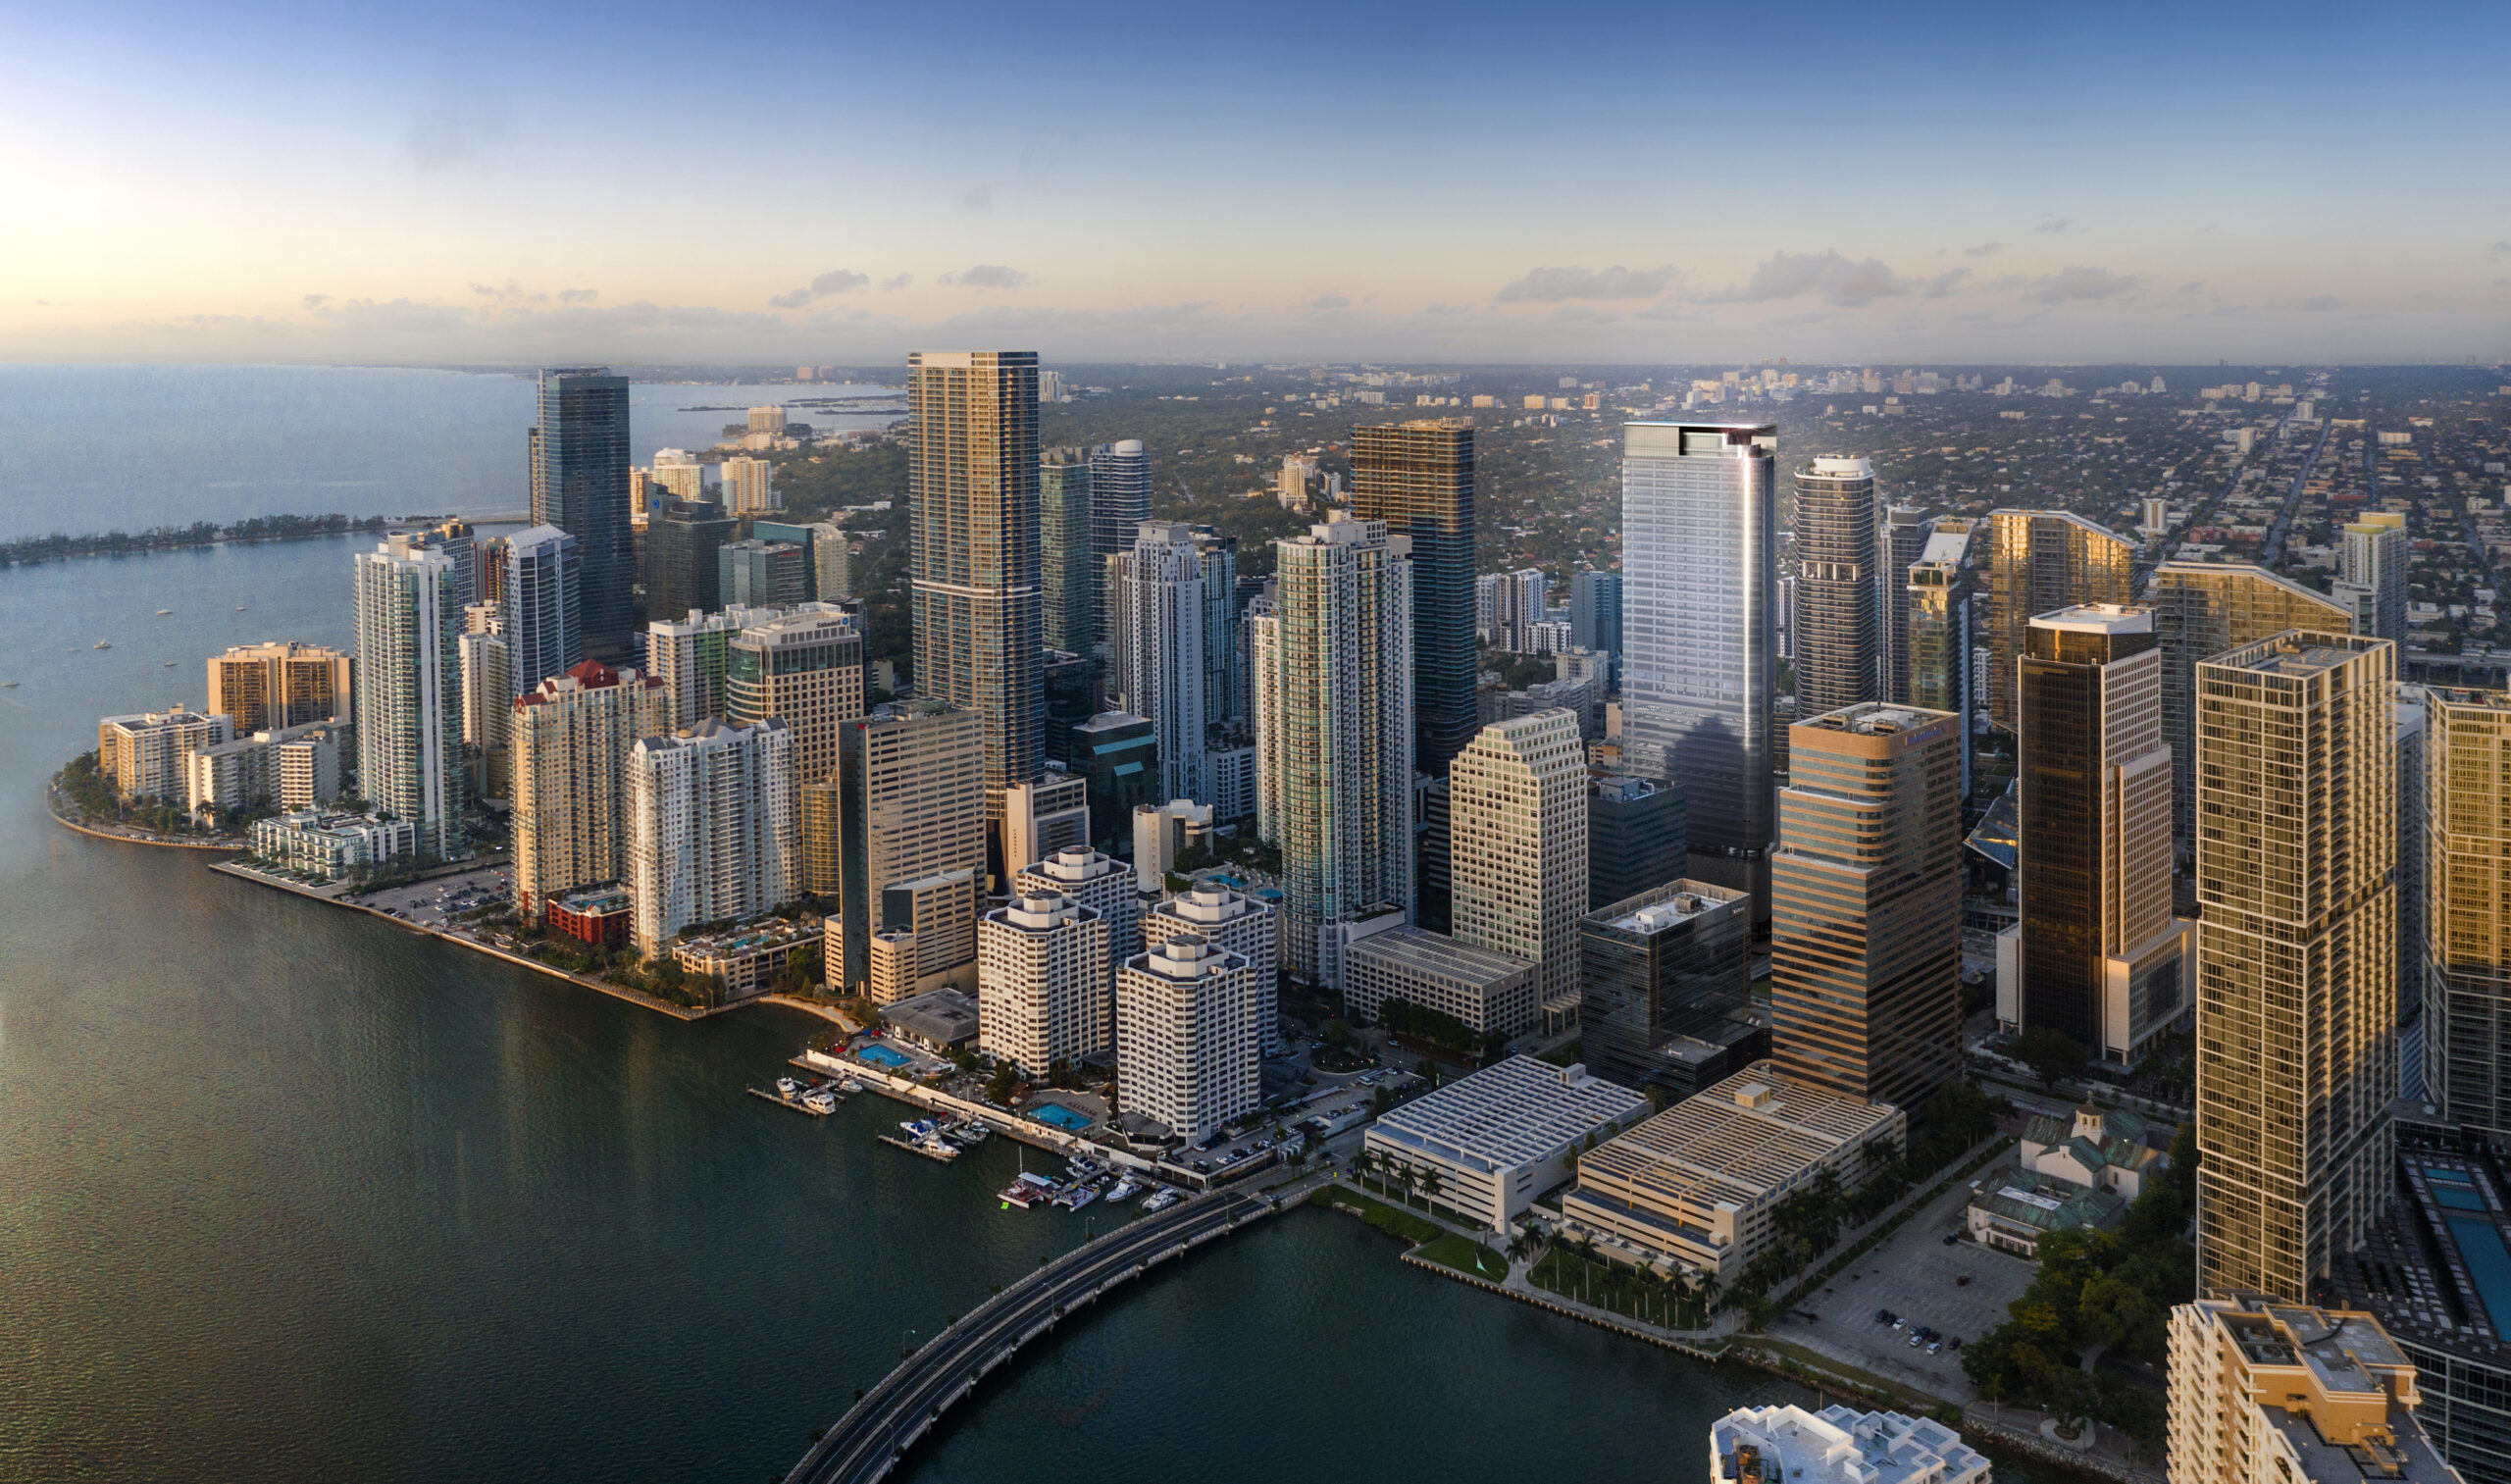 These Are The 21 New Miami Towers That Will Be Under Construction In 2021